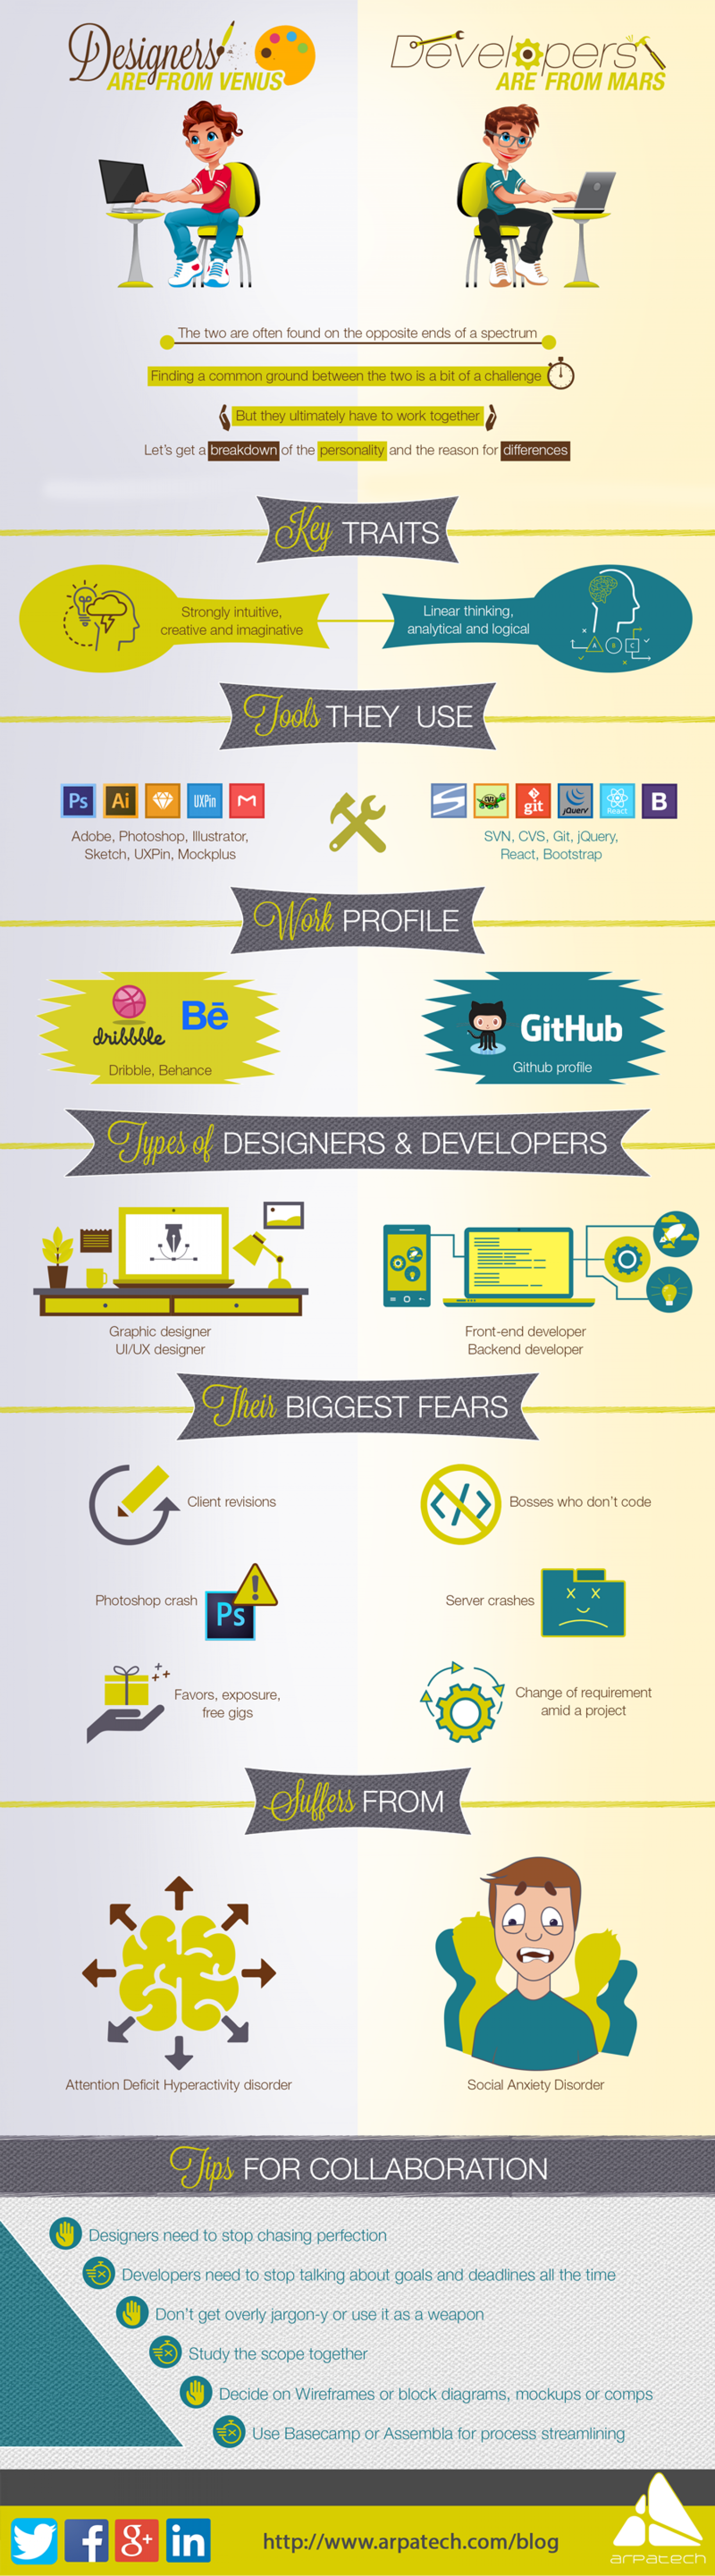 Designers are from Venus Developers are from Mars Infographic